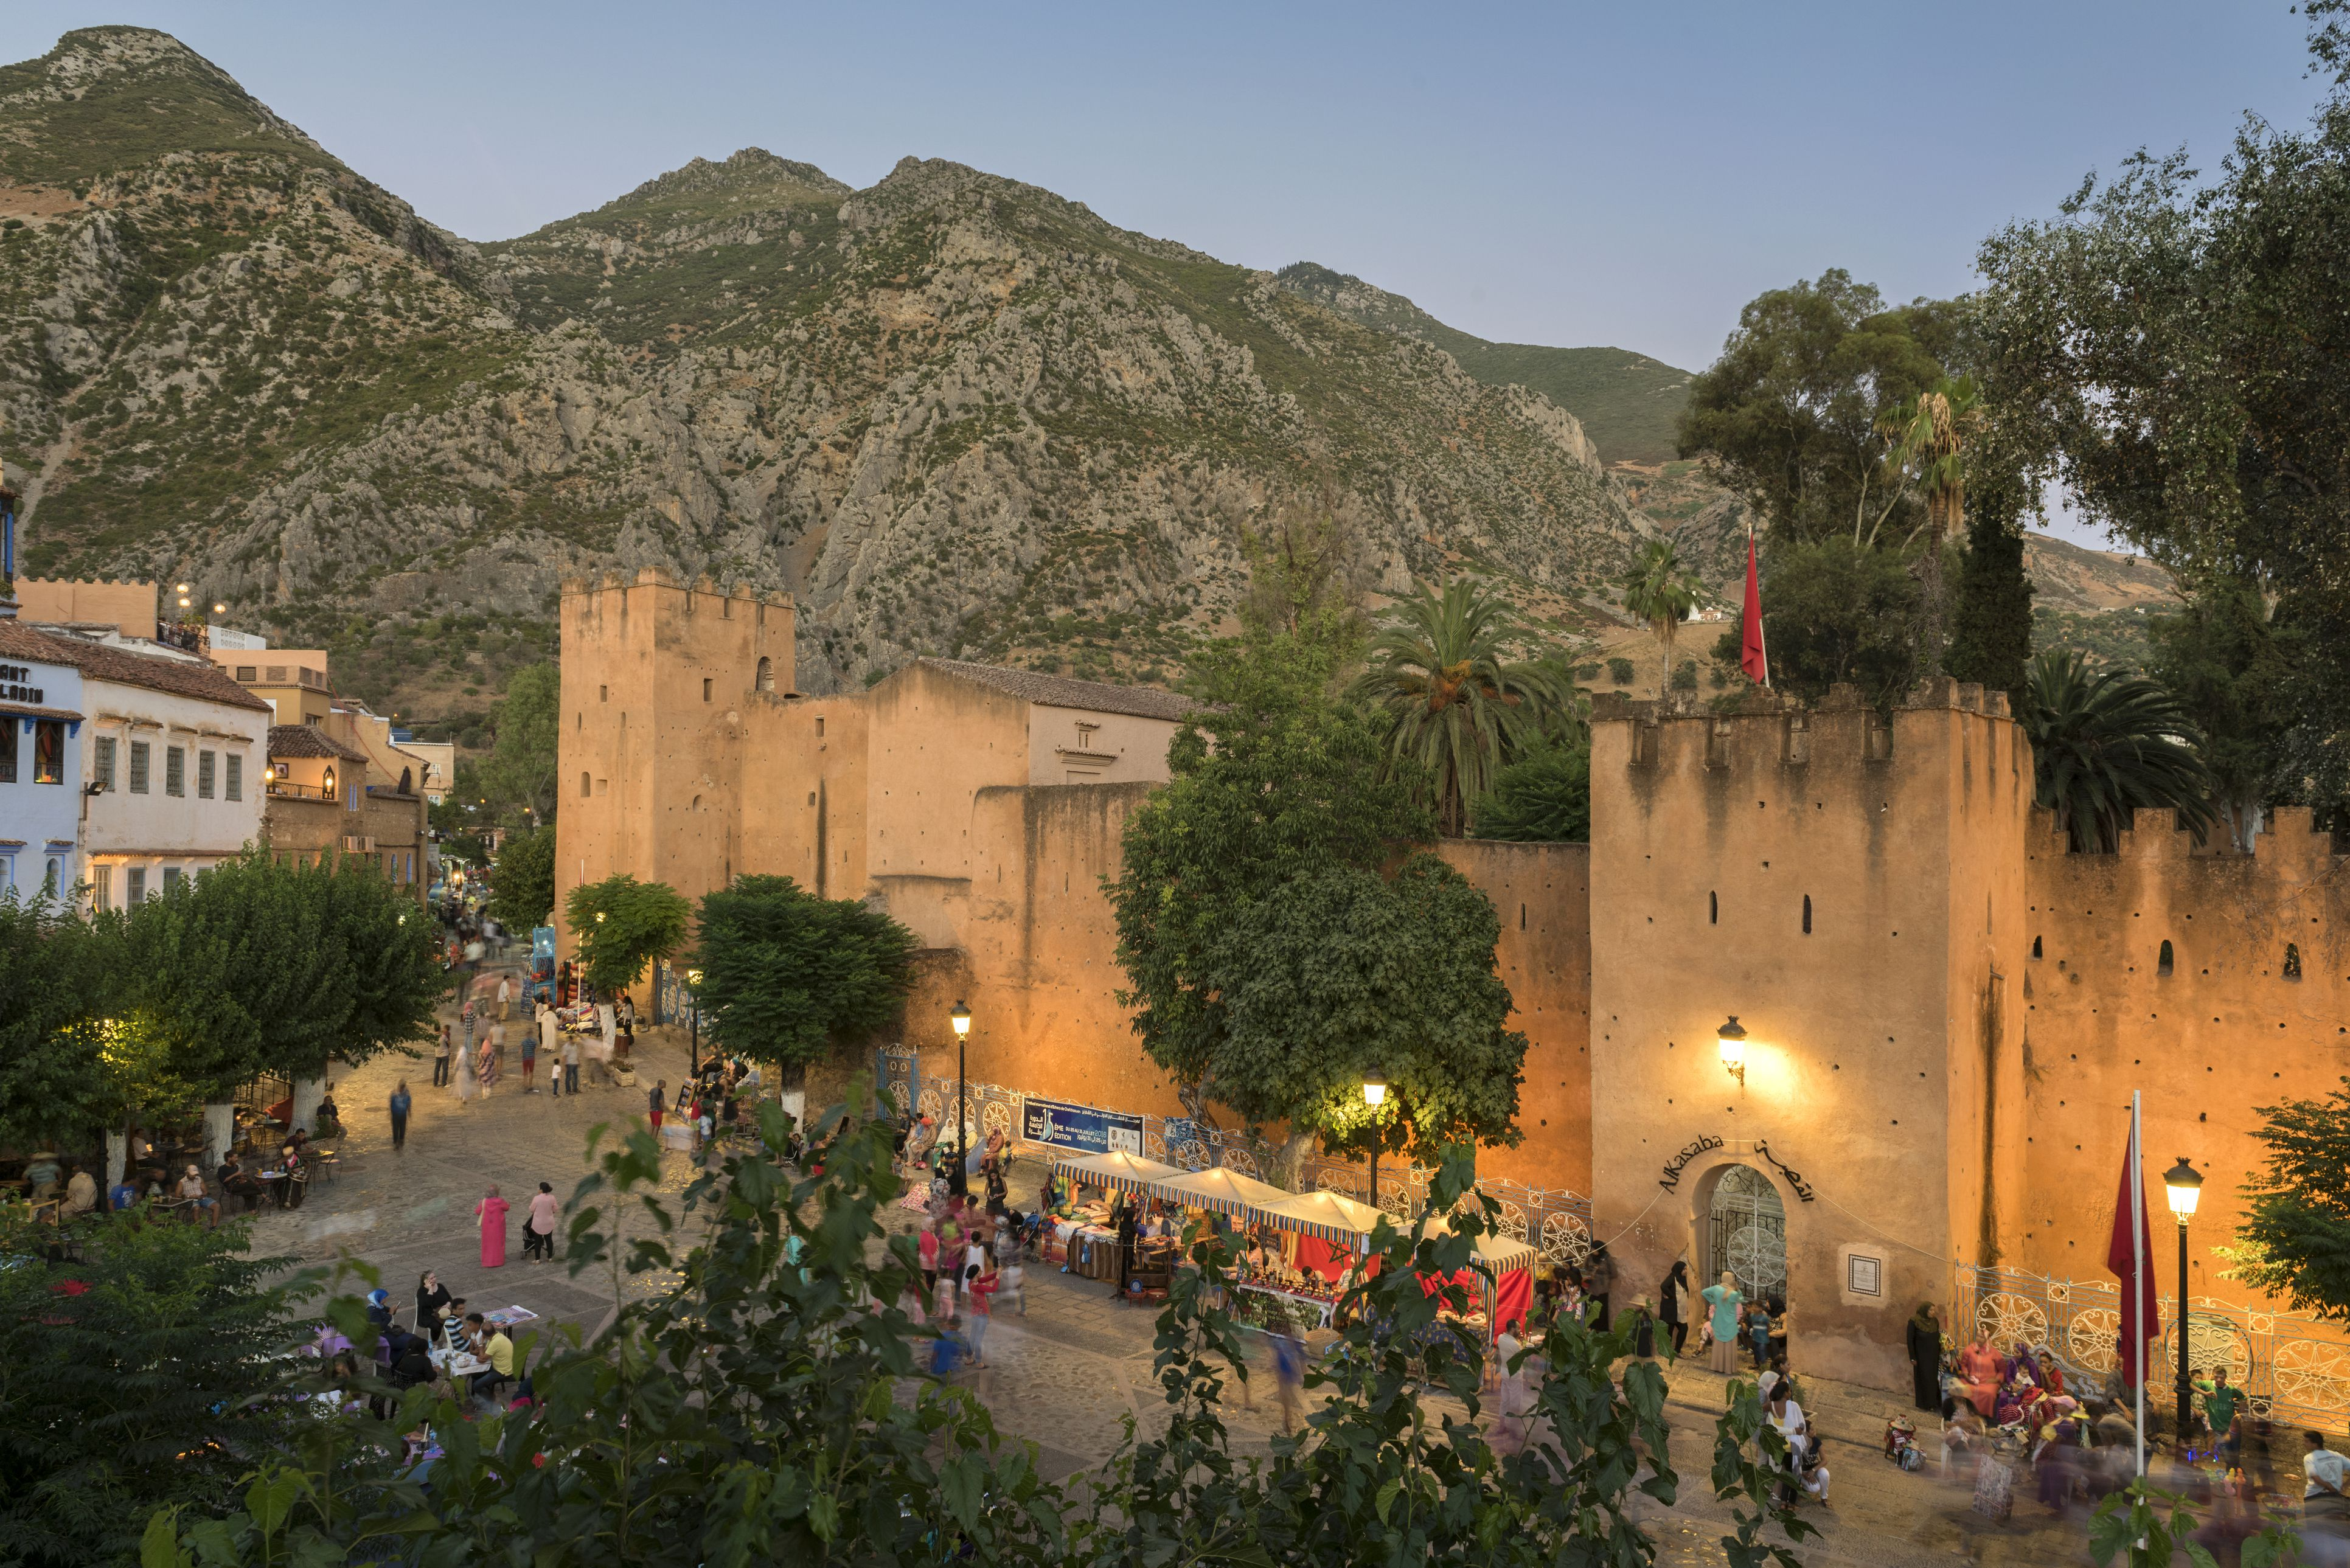 How to get to Chefchaouen